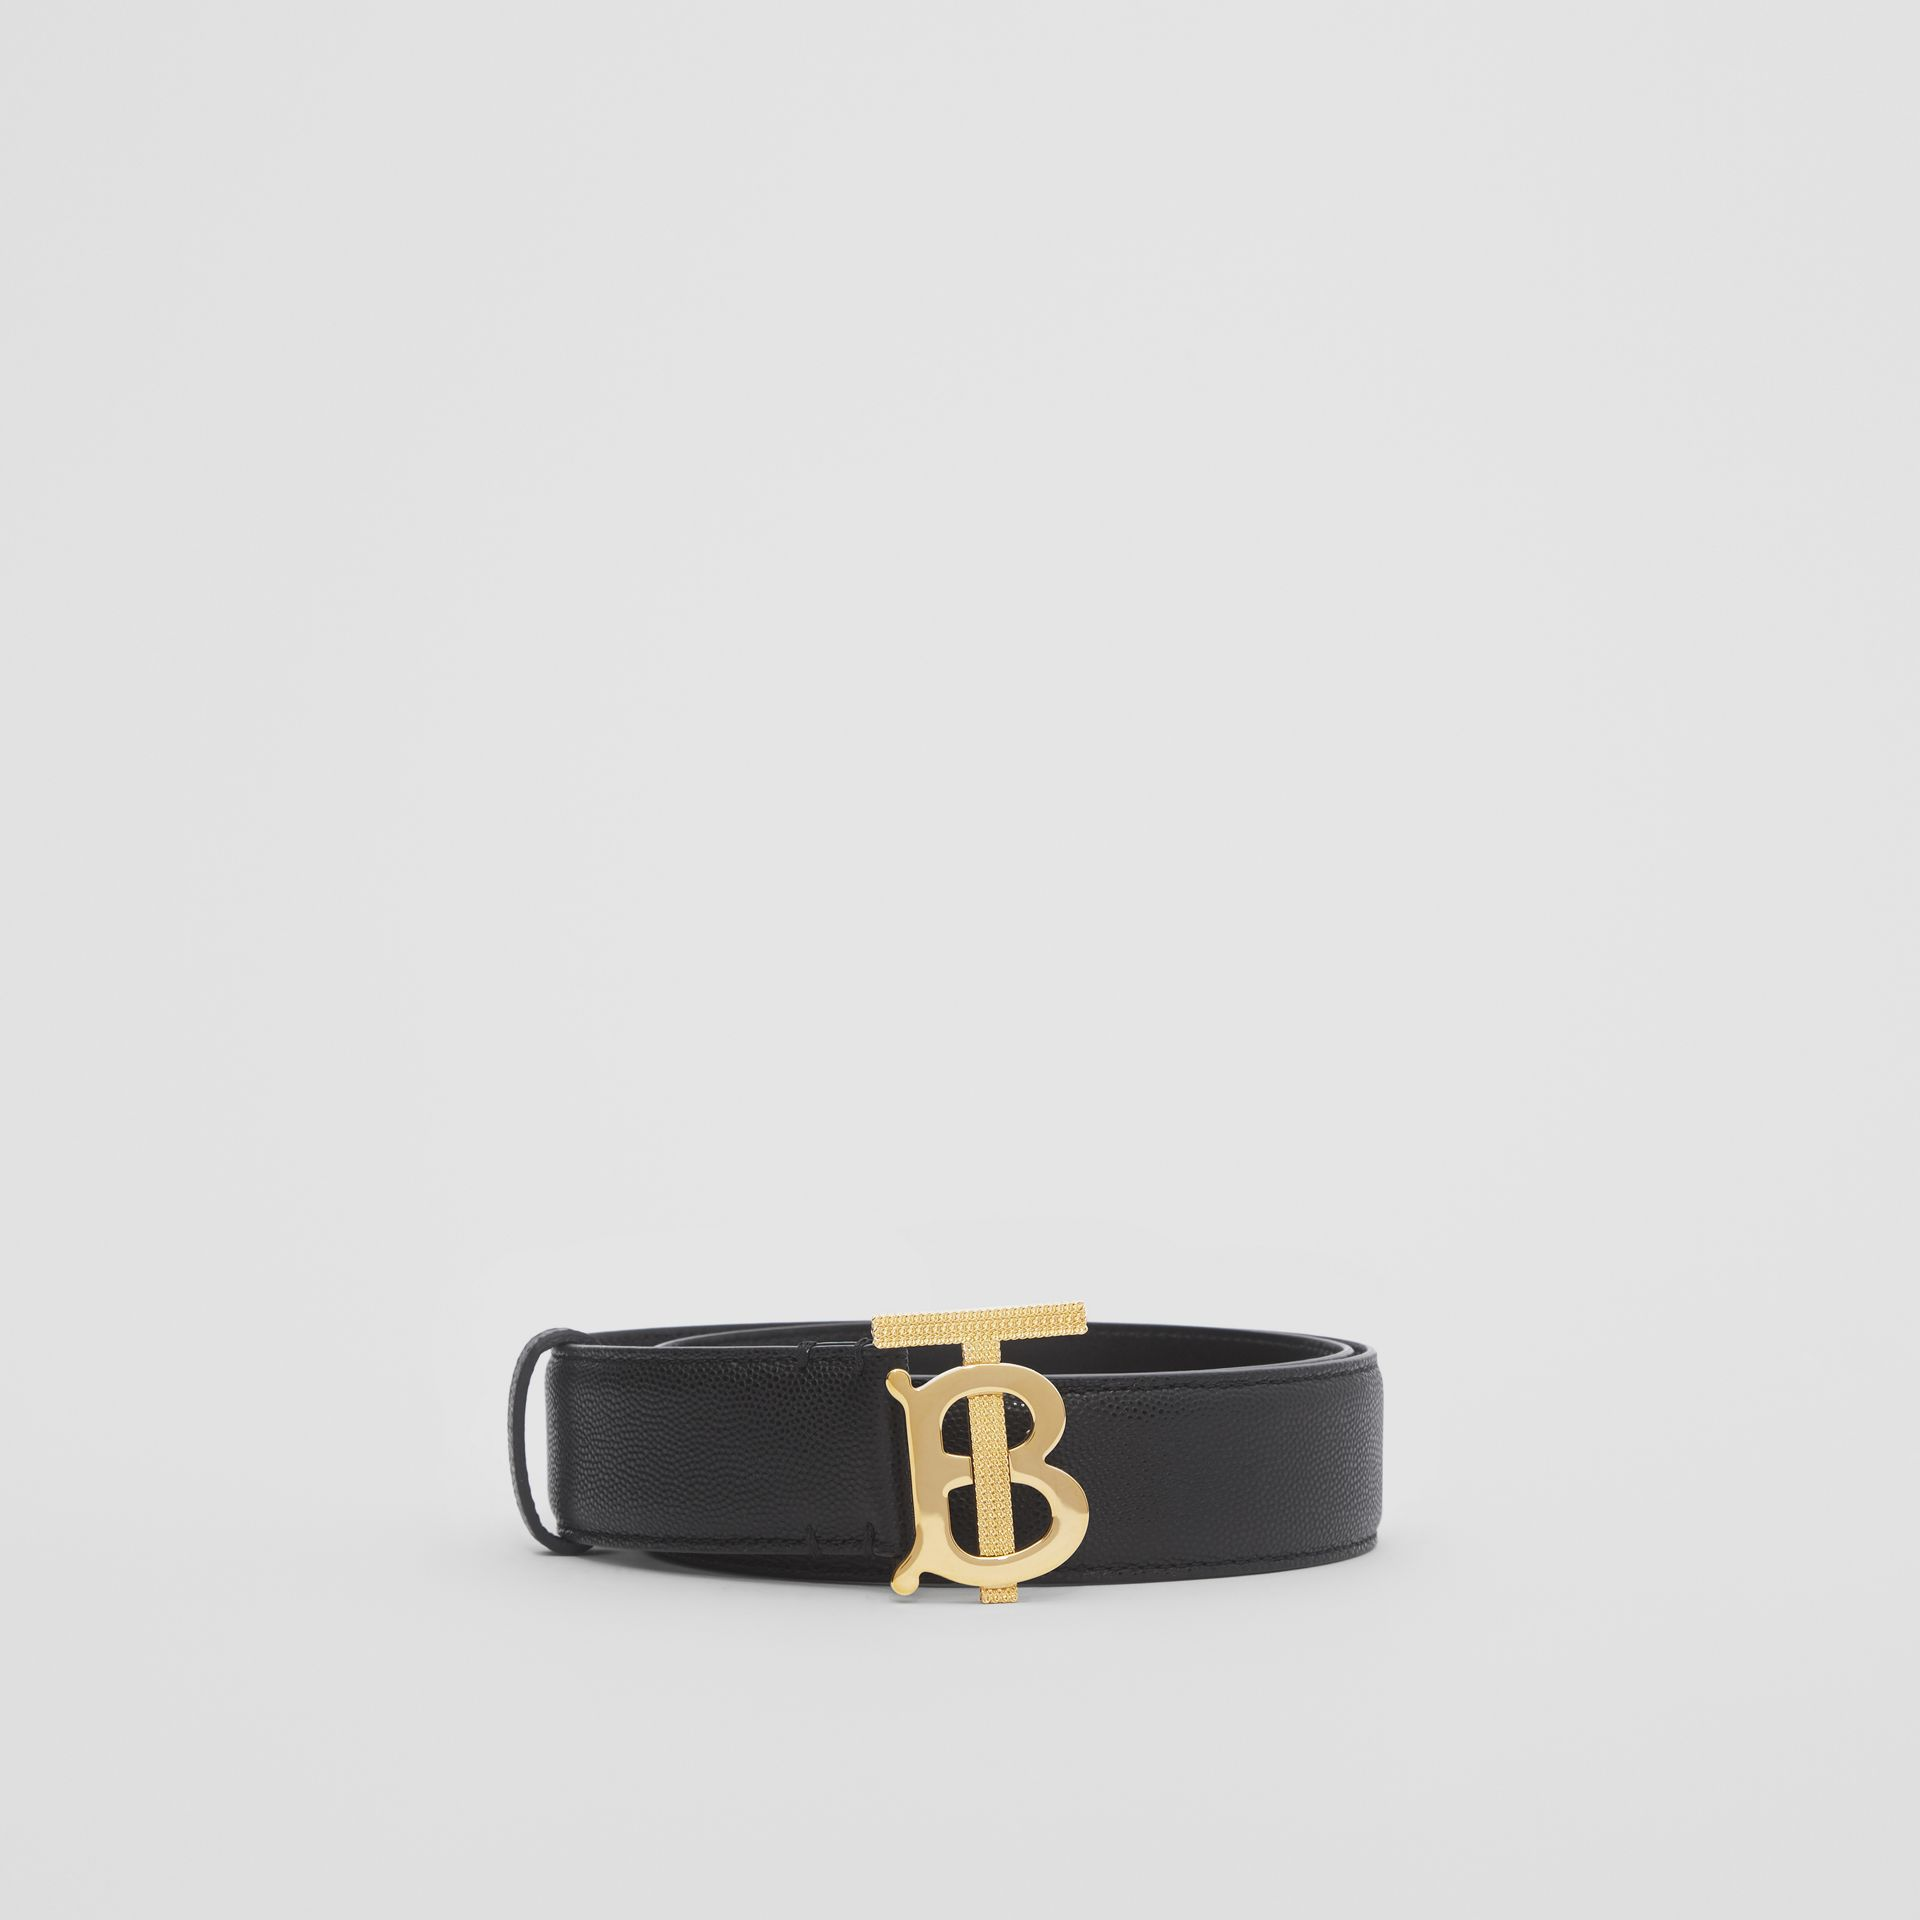 Monogram Motif Grainy Leather Belt in Black/light Gold - Women | Burberry - gallery image 2